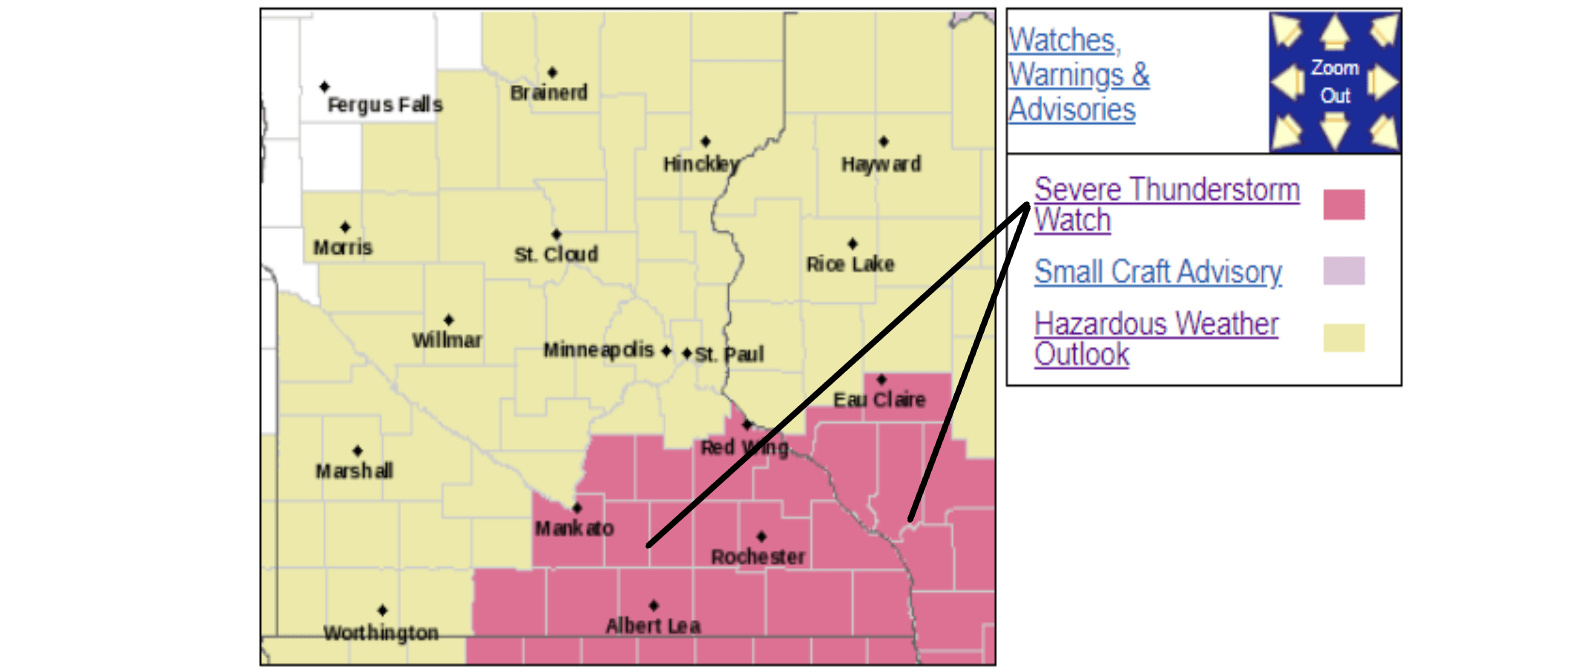 Severe Thunderstorm Watch in effect on Sunday